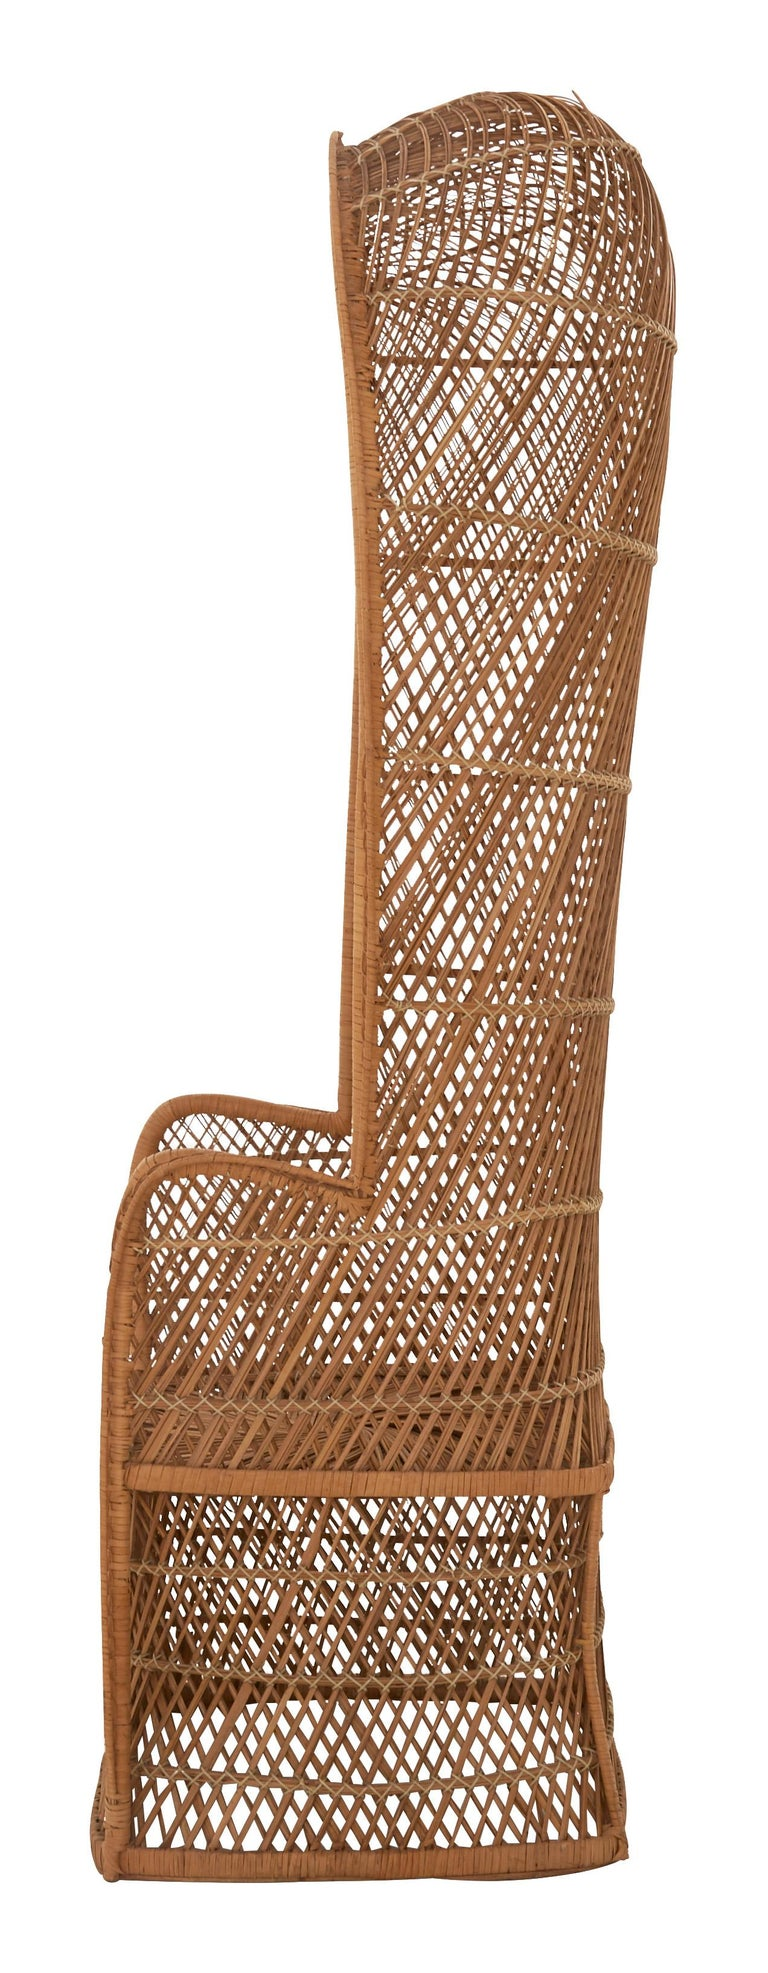 •Hooded, canopy style, weathered rattan chair •Mid-20th century •American •Measures: 25.25